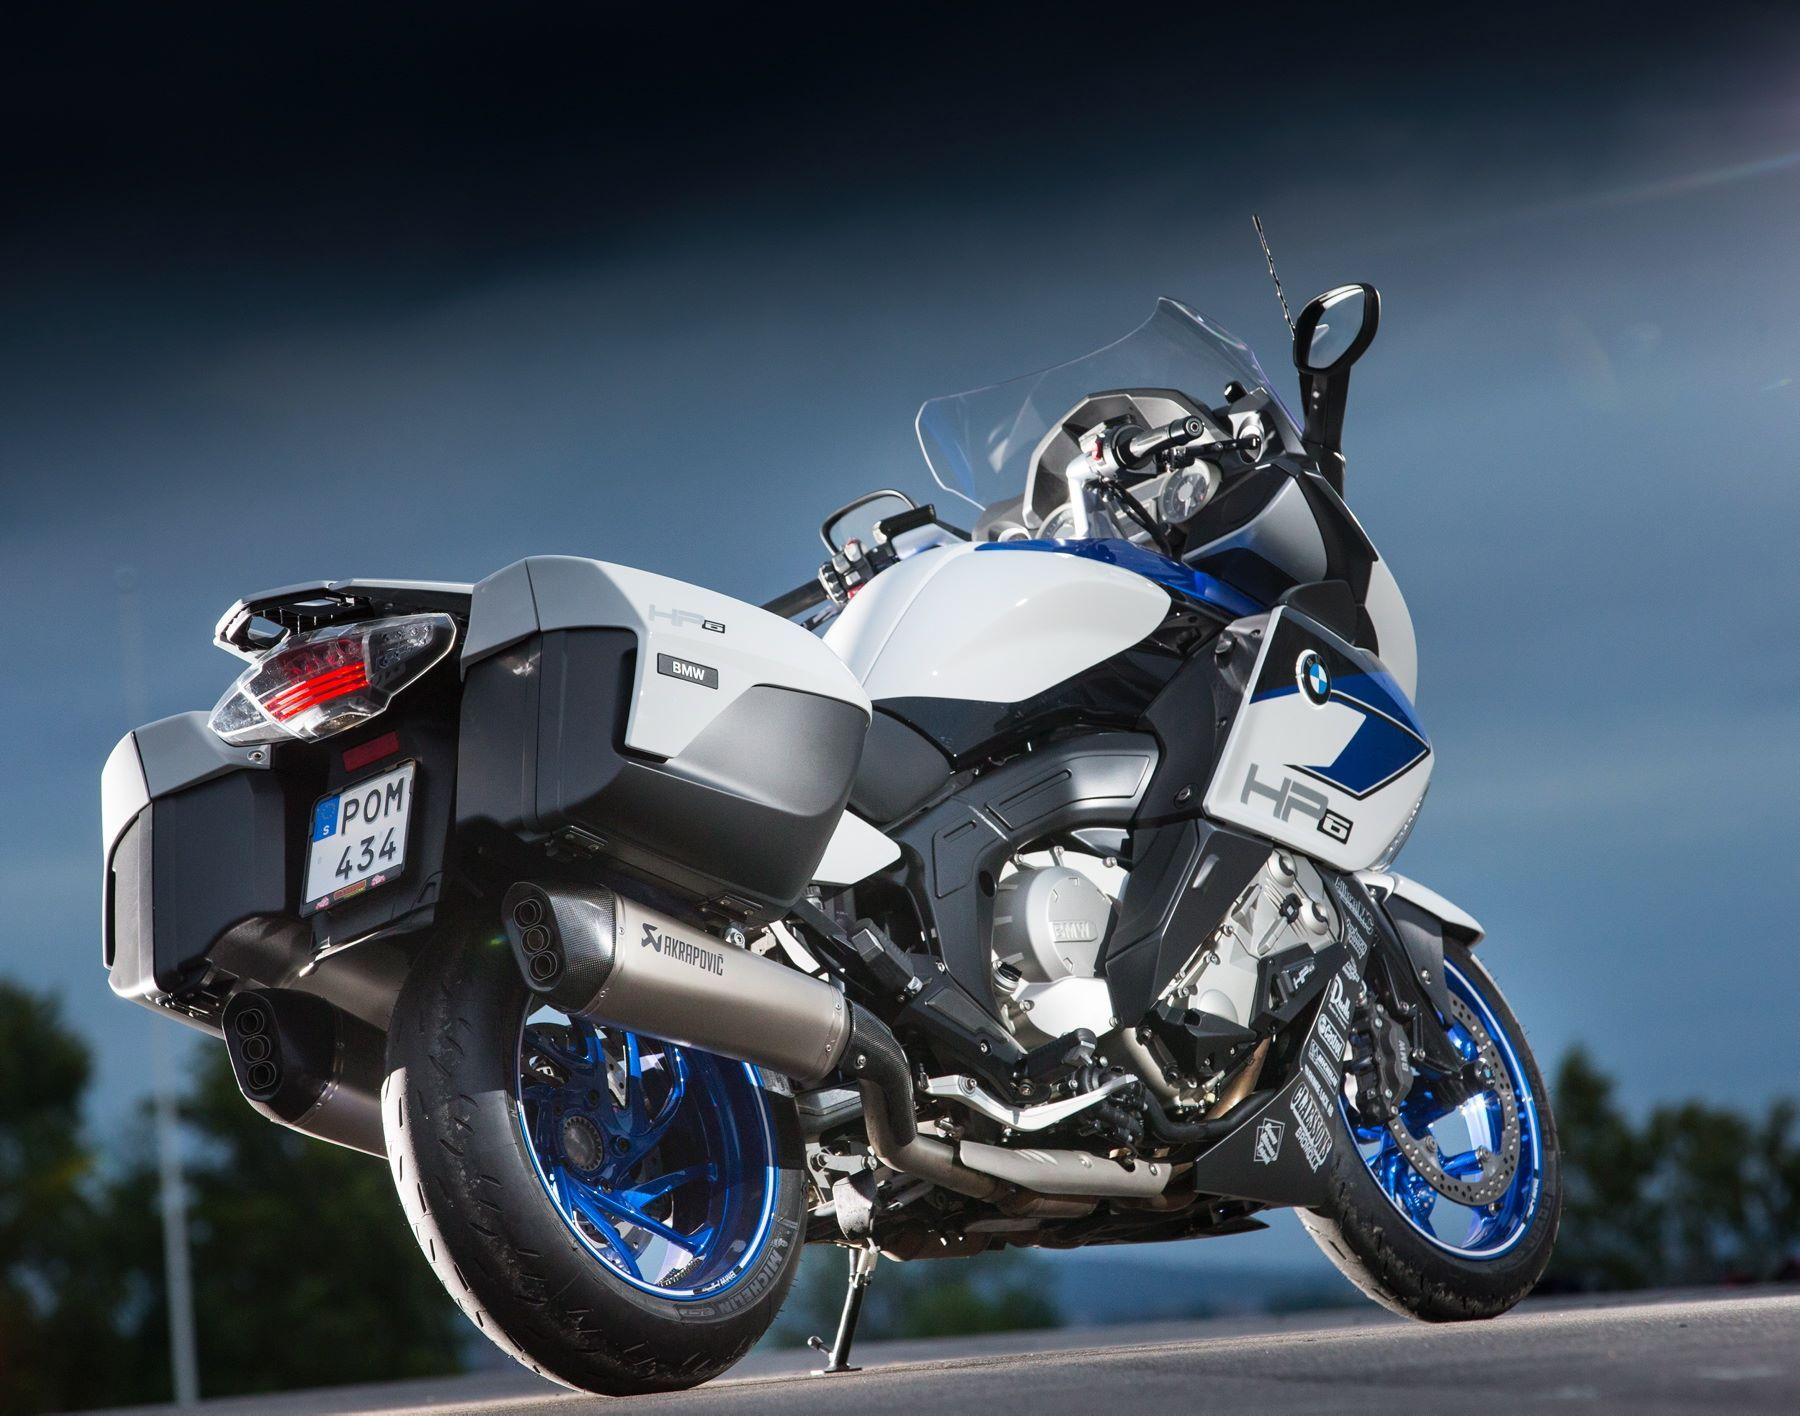 Magazine All About Mc Has Built A K 1600 Gt And Baptized Creation Of Hp6 Bmw K1600 Gt K1600gt Motorcycle Motor Bmw